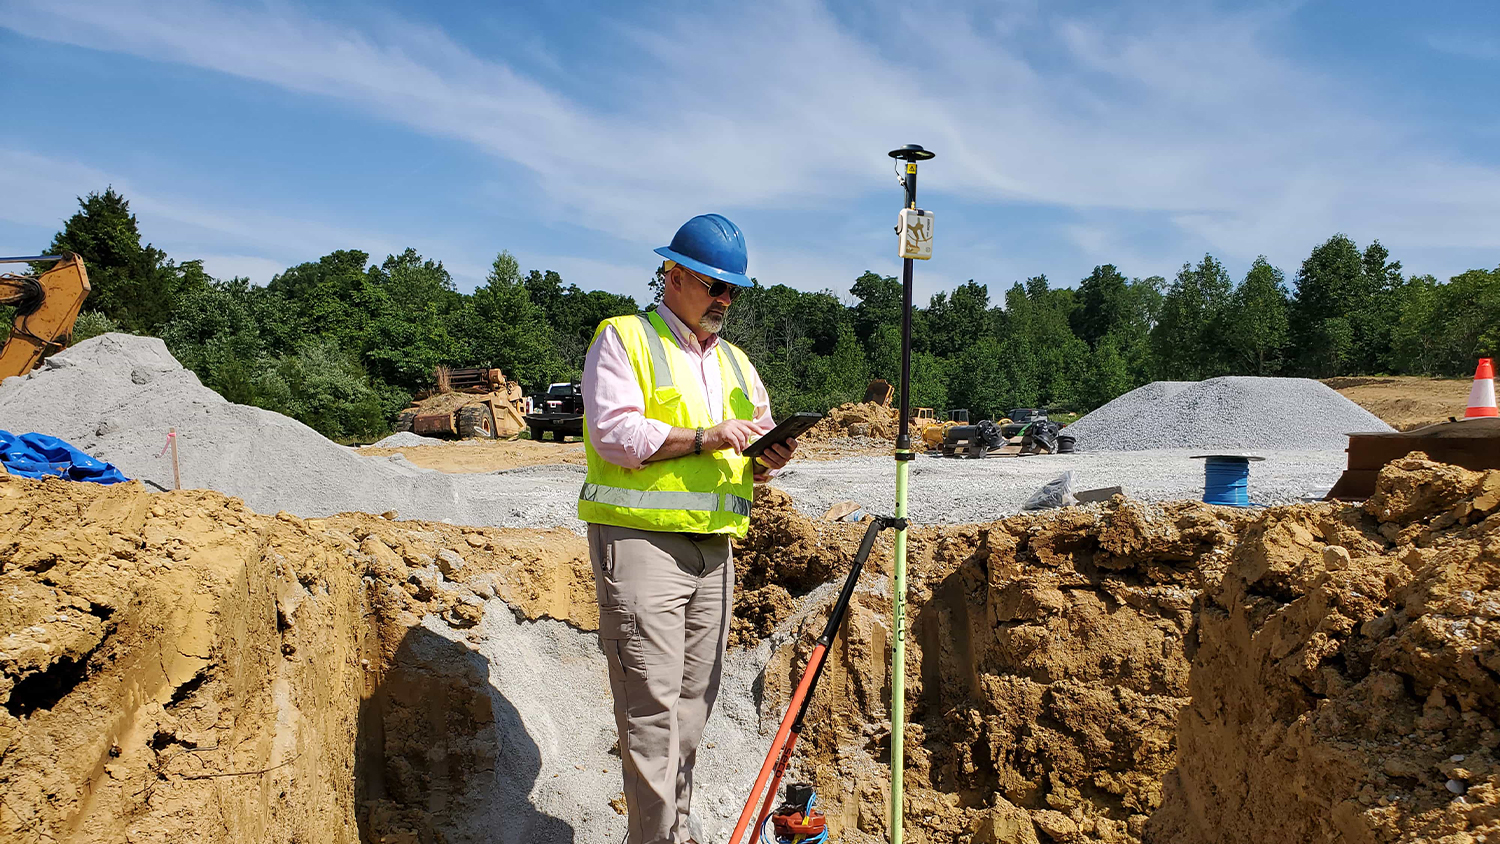 Oldham County Water District use Arrow Gold and ArcGIS apps to map water utility assets with centimeter-level precision in Kentucky